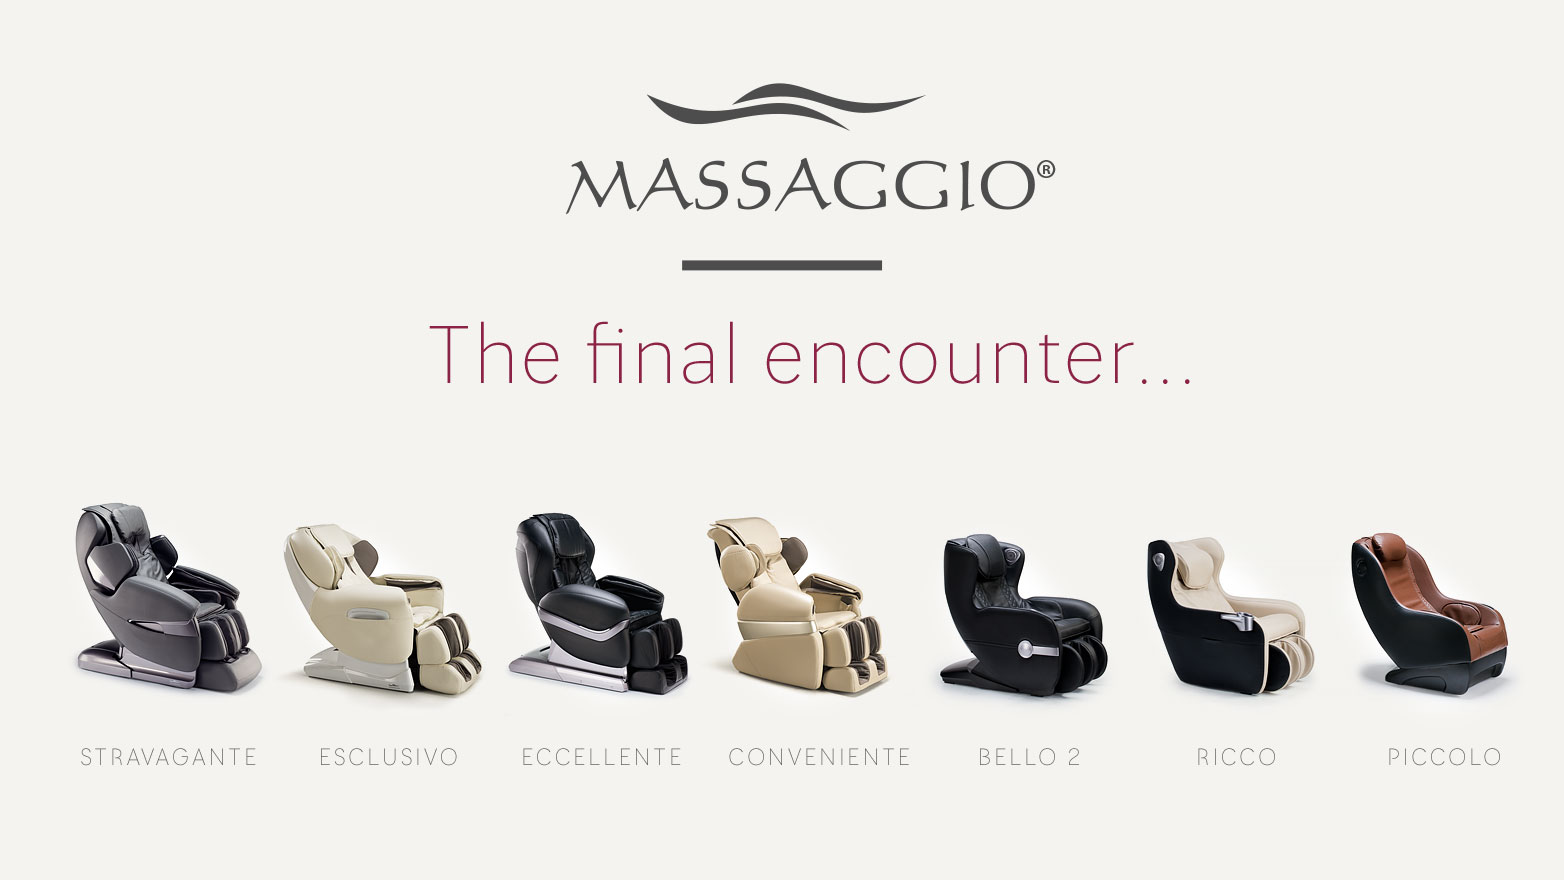 Final encounter of Massaggio brand